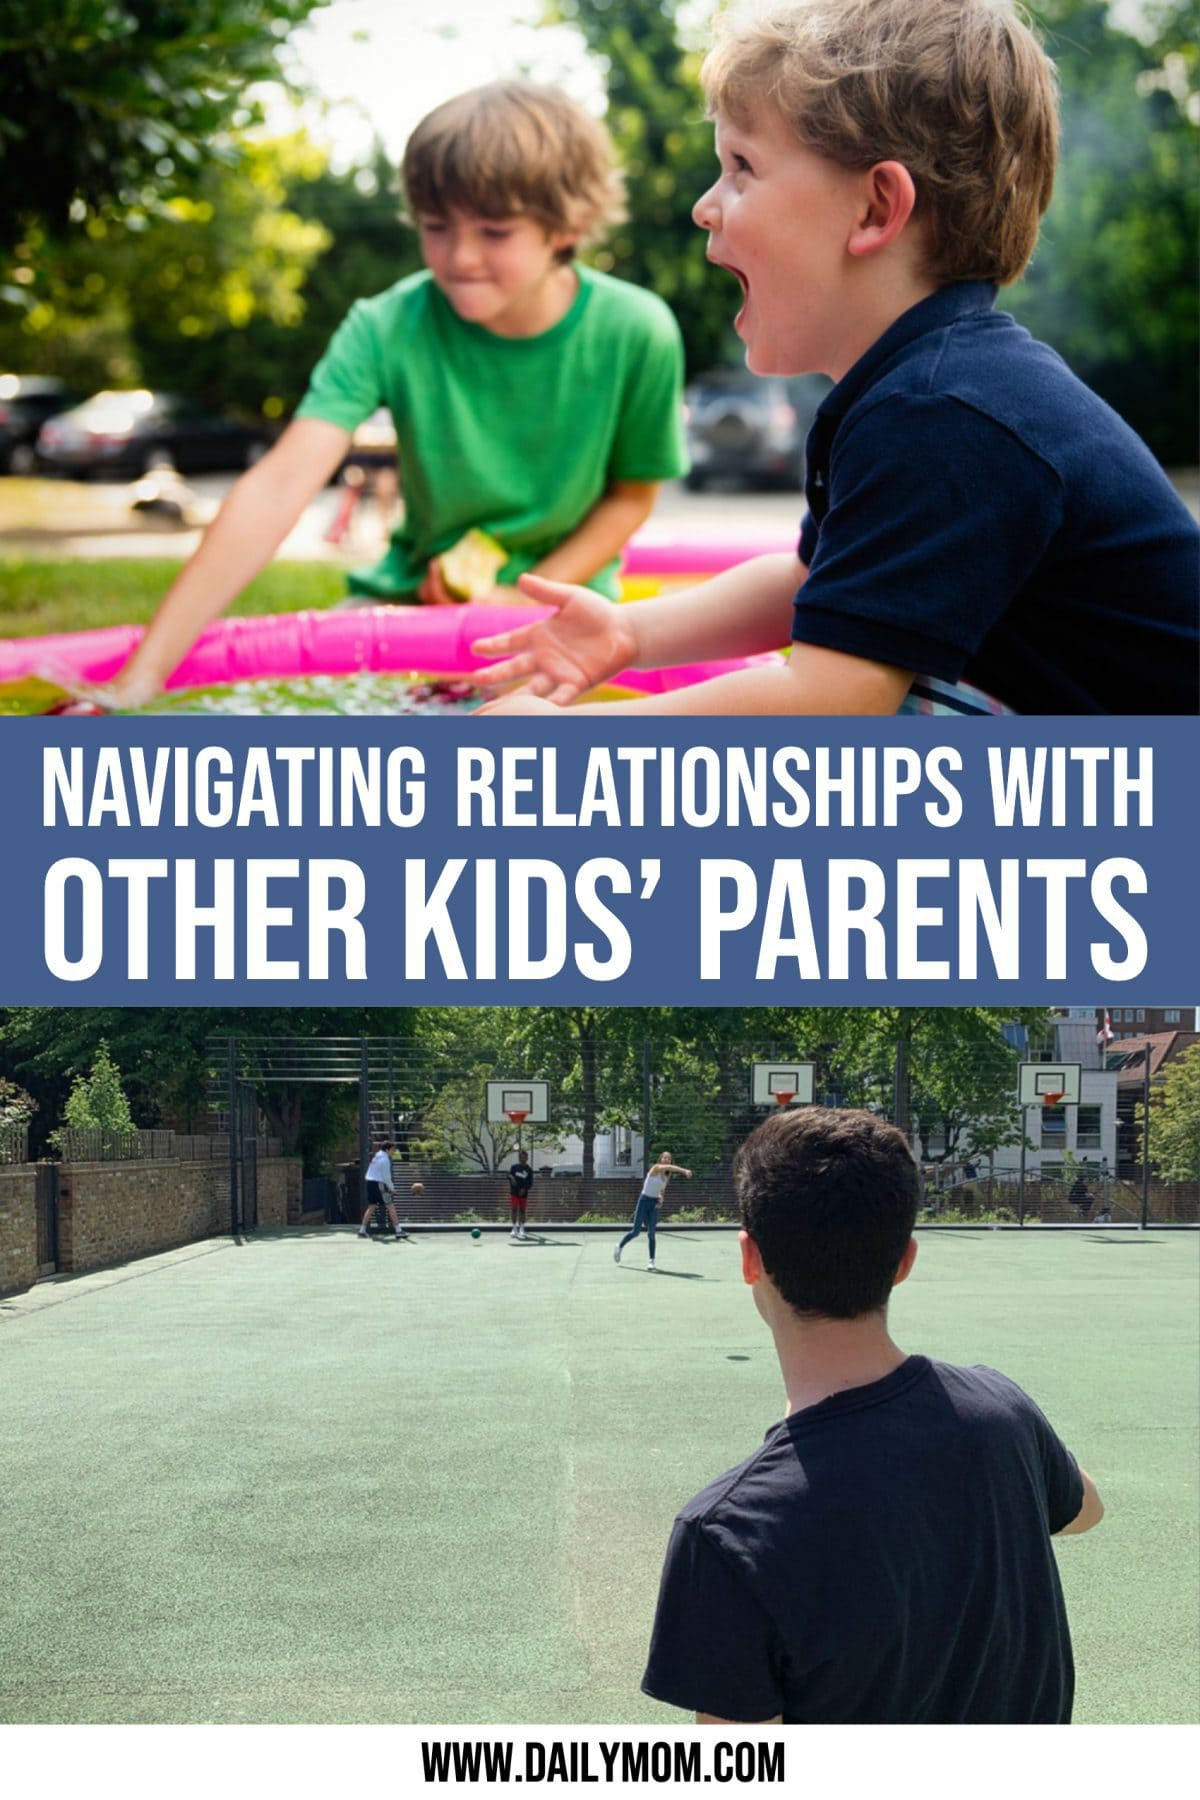 Your Child's Friend's Parents: Your Guide To Navigating These Tricky Waters